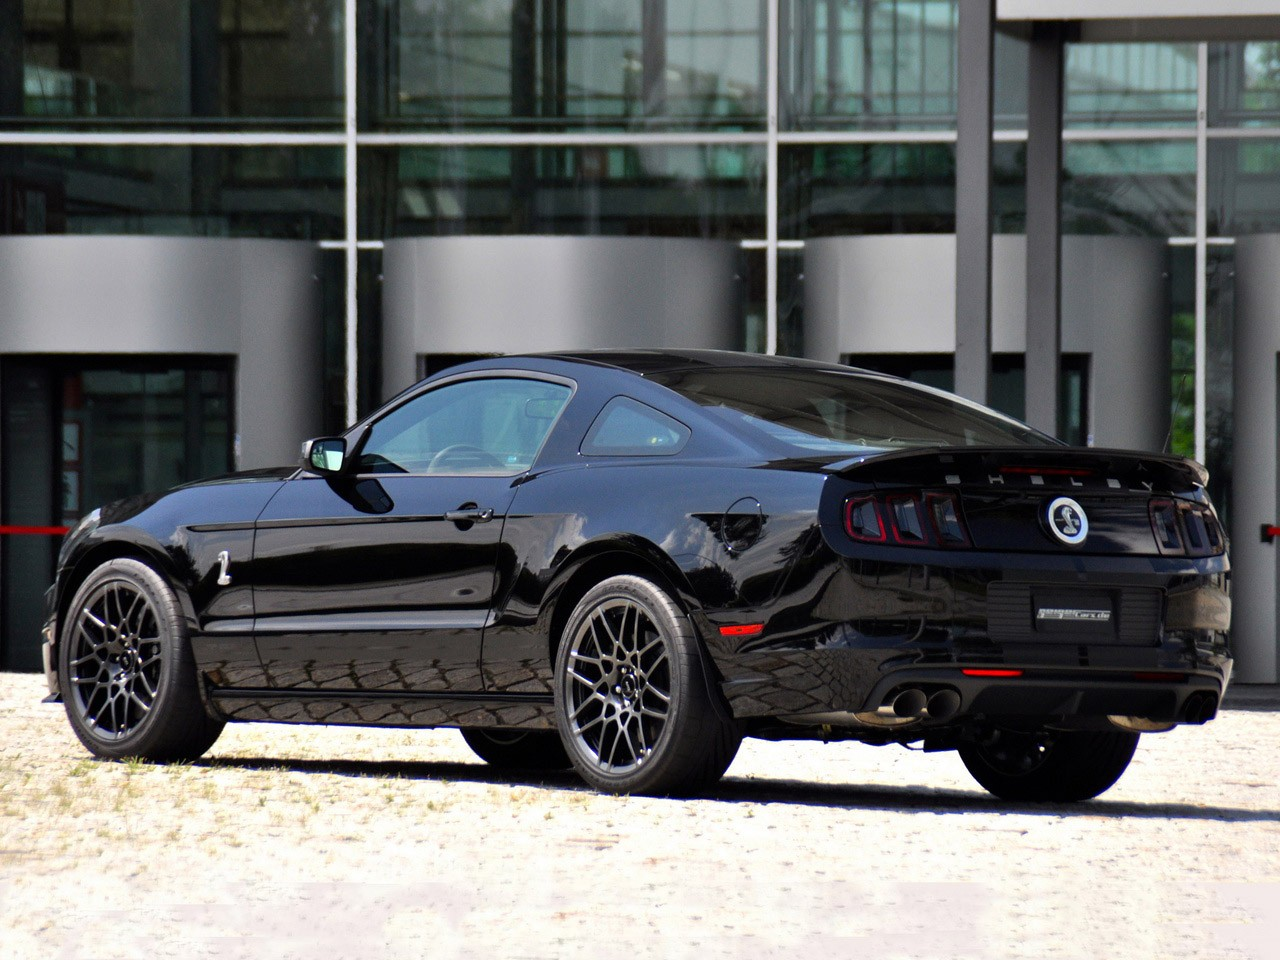 2012 Geigercars - Ford Mustang Shelby GT500